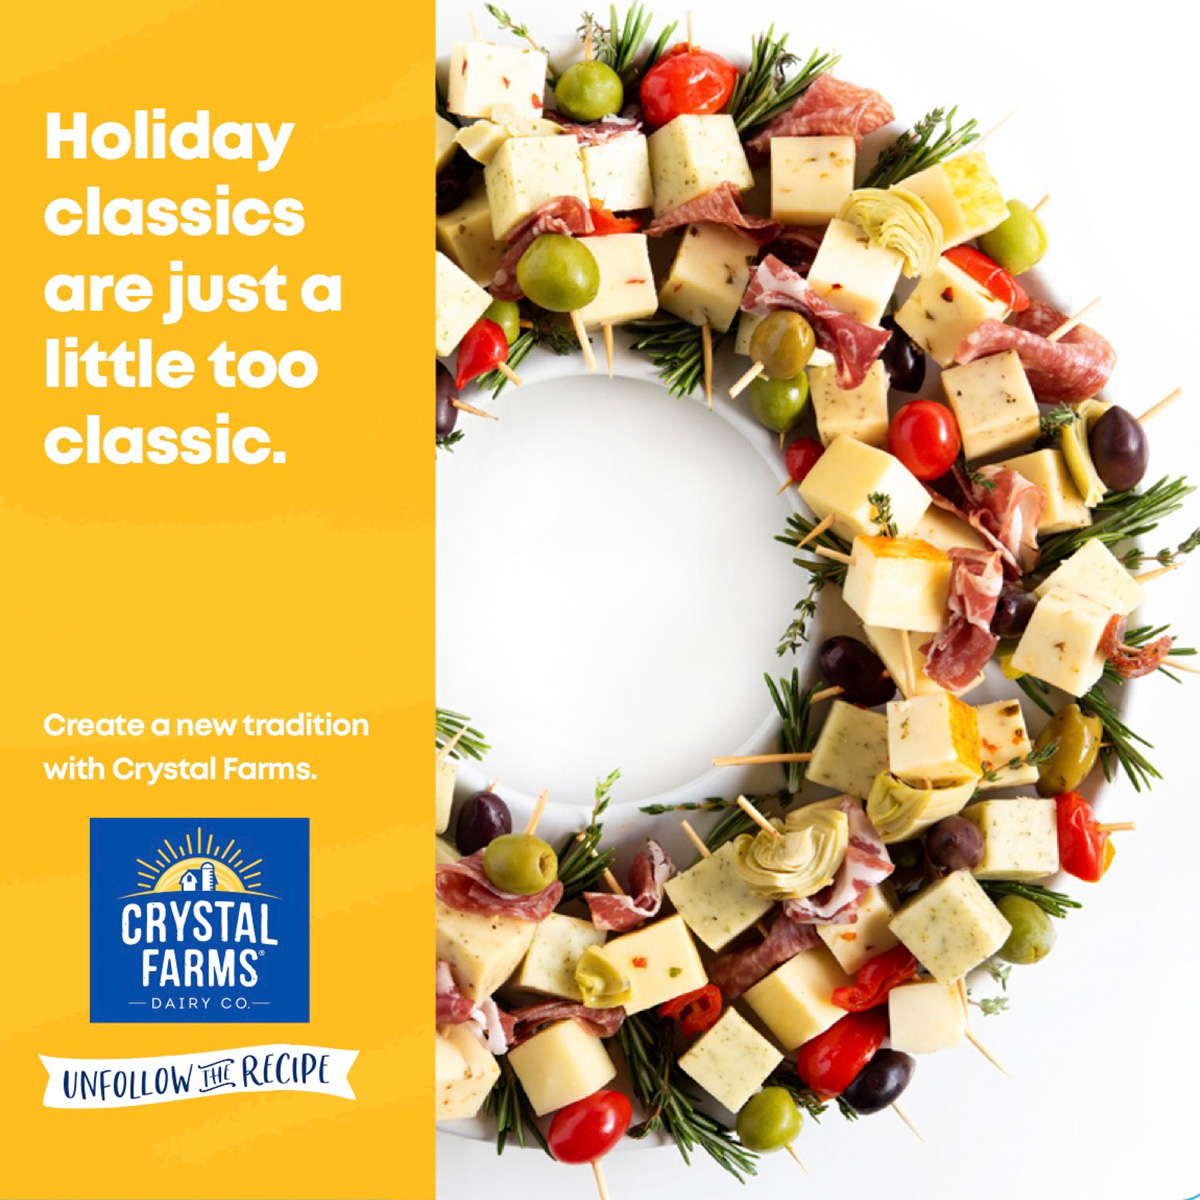 Crystal Farms: Holiday classics are just a little too classic. Create a new tradition with Crystal Farms. Unfollow the Recipe.